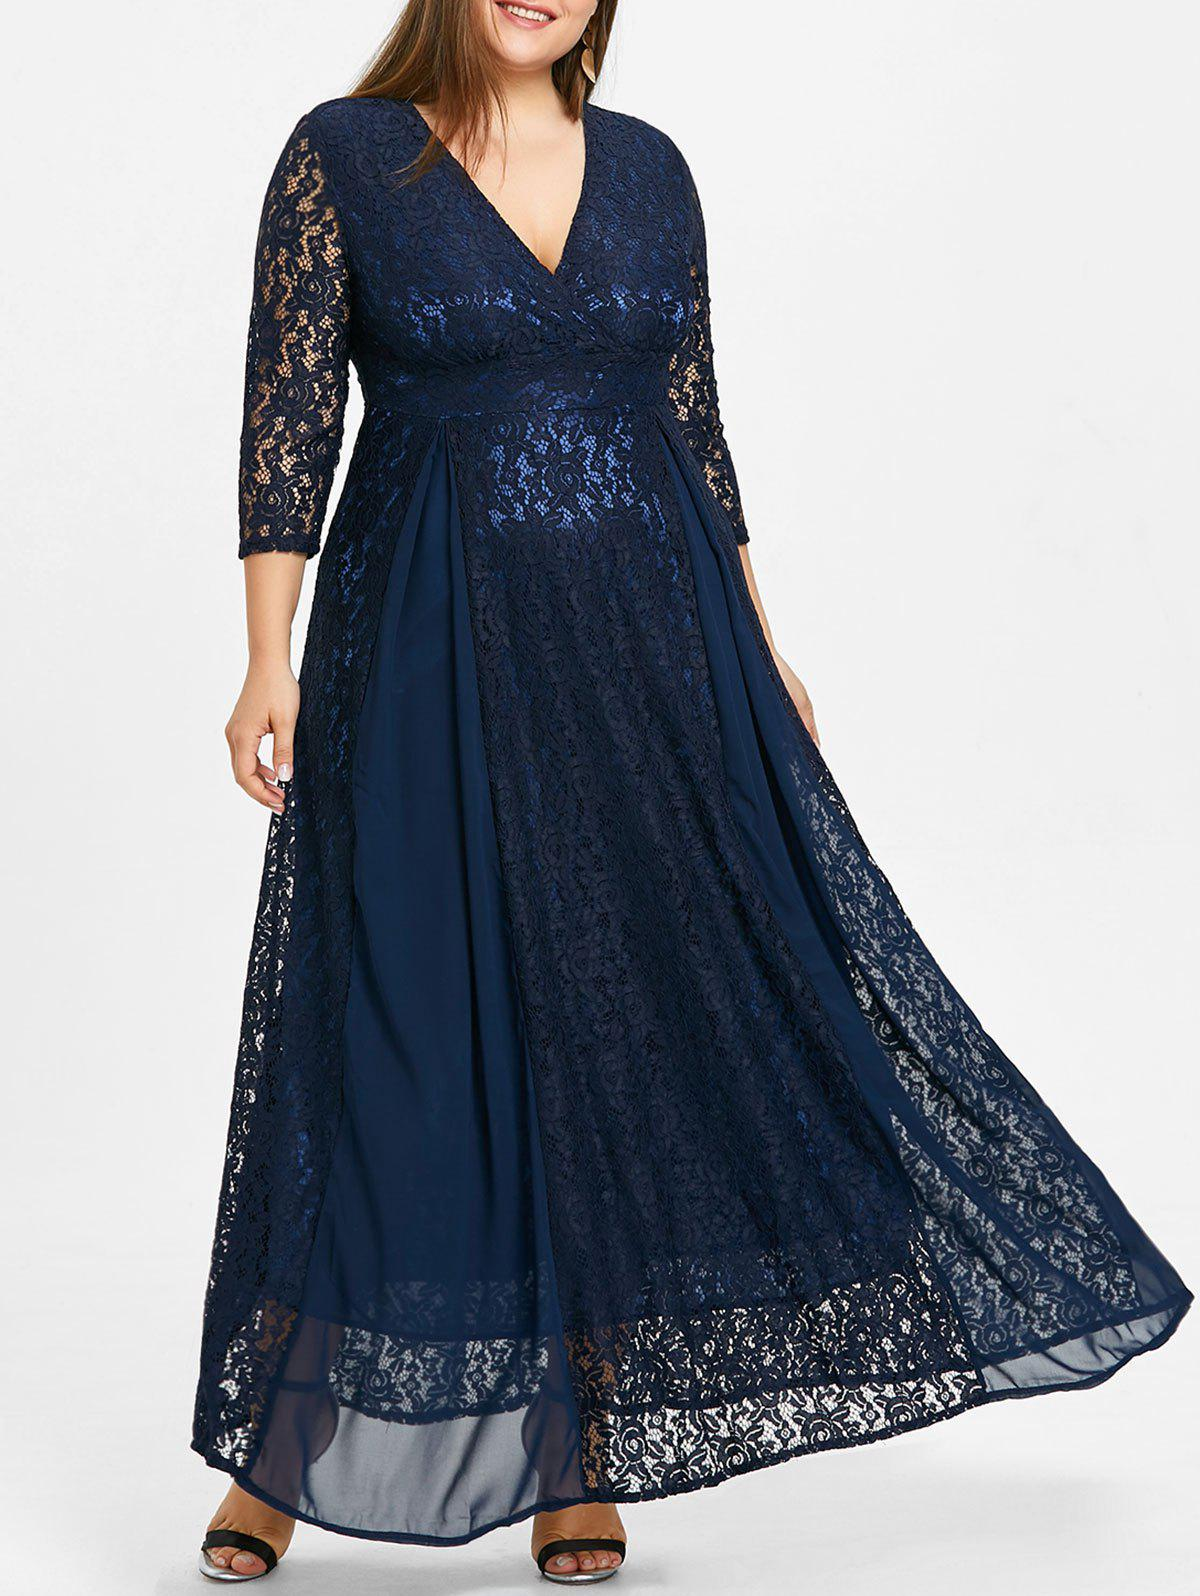 Empire Waist Plus Size Lace Surplice Dress каталог empire